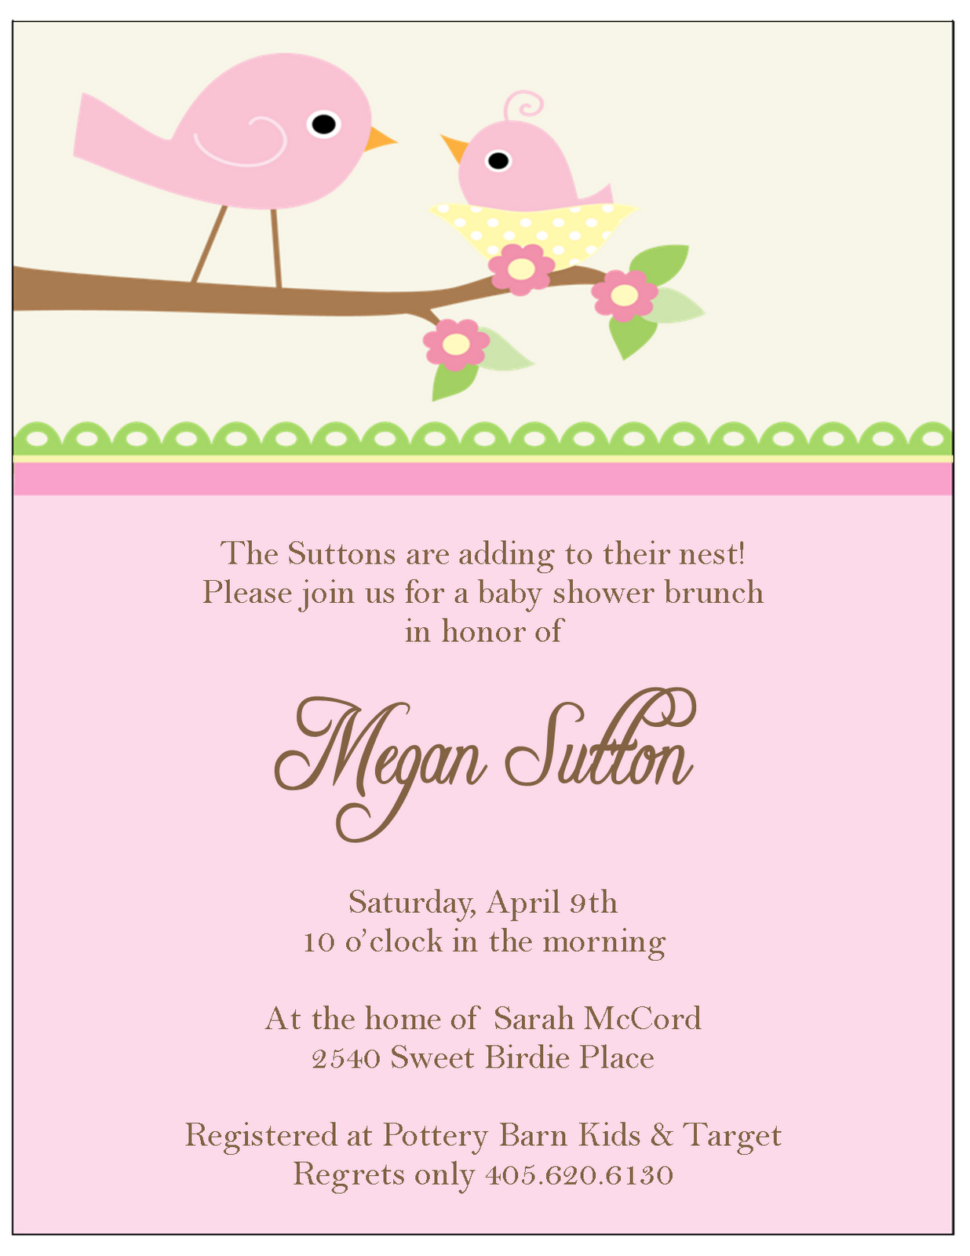 Medium Size of Baby Shower:63+ Delightful Cheap Baby Shower Invitations Image Inspirations Cheap Baby Shower Invitations Baby Shower Accessories Baby Shower Host Save The Date Baby Shower Baby Shower Paper Full Size Of Colorsbaby Shower Invites For Stylish Baby Shower For Cake